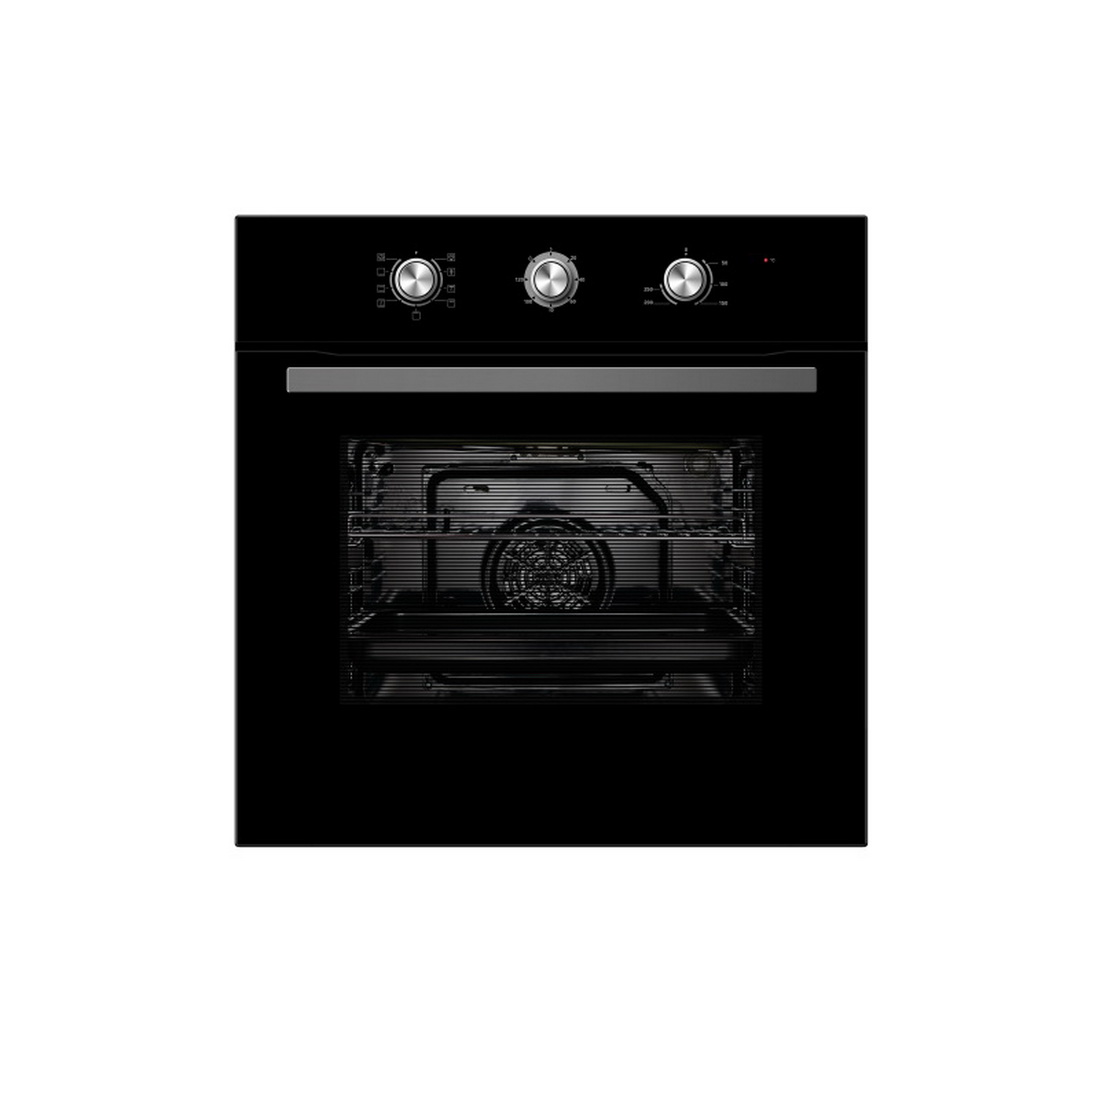 5 Function Built-In Manual Wall Oven 60cm 65L Black 65DME40004-BK